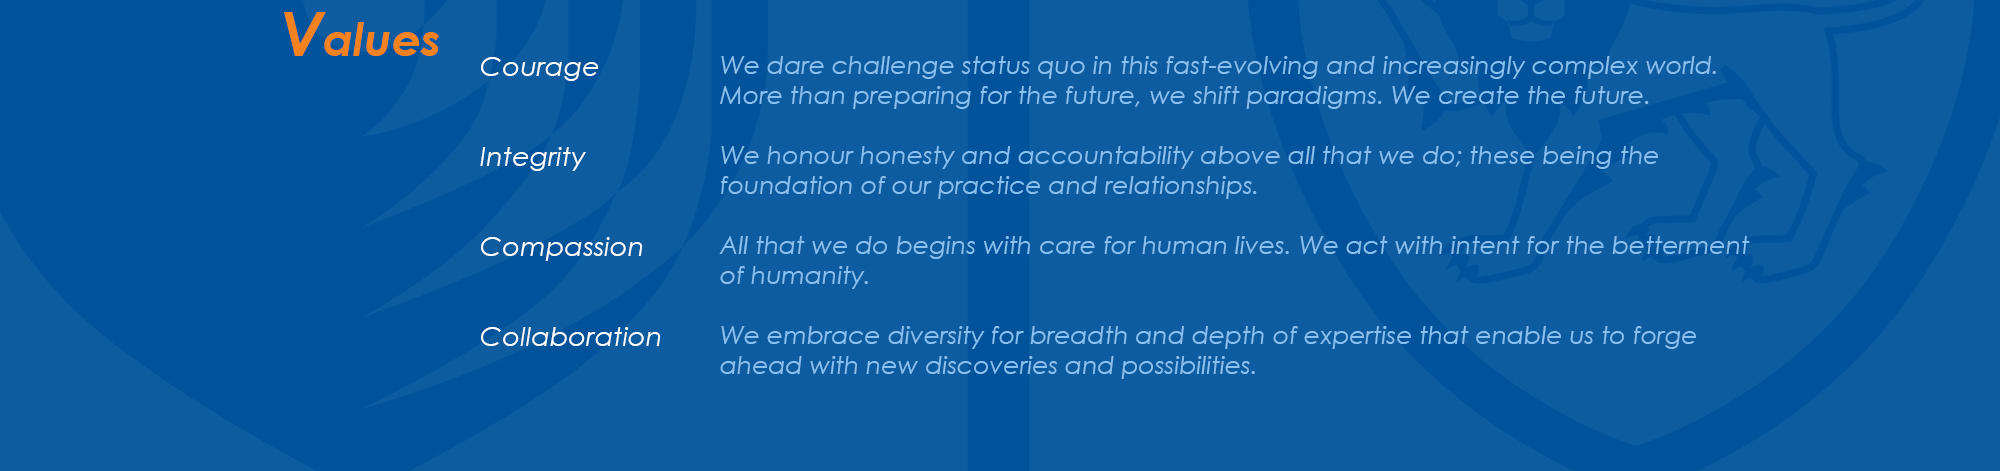 Duke-NUS' values are Courage, Integrity, Compassion and Collaboration.